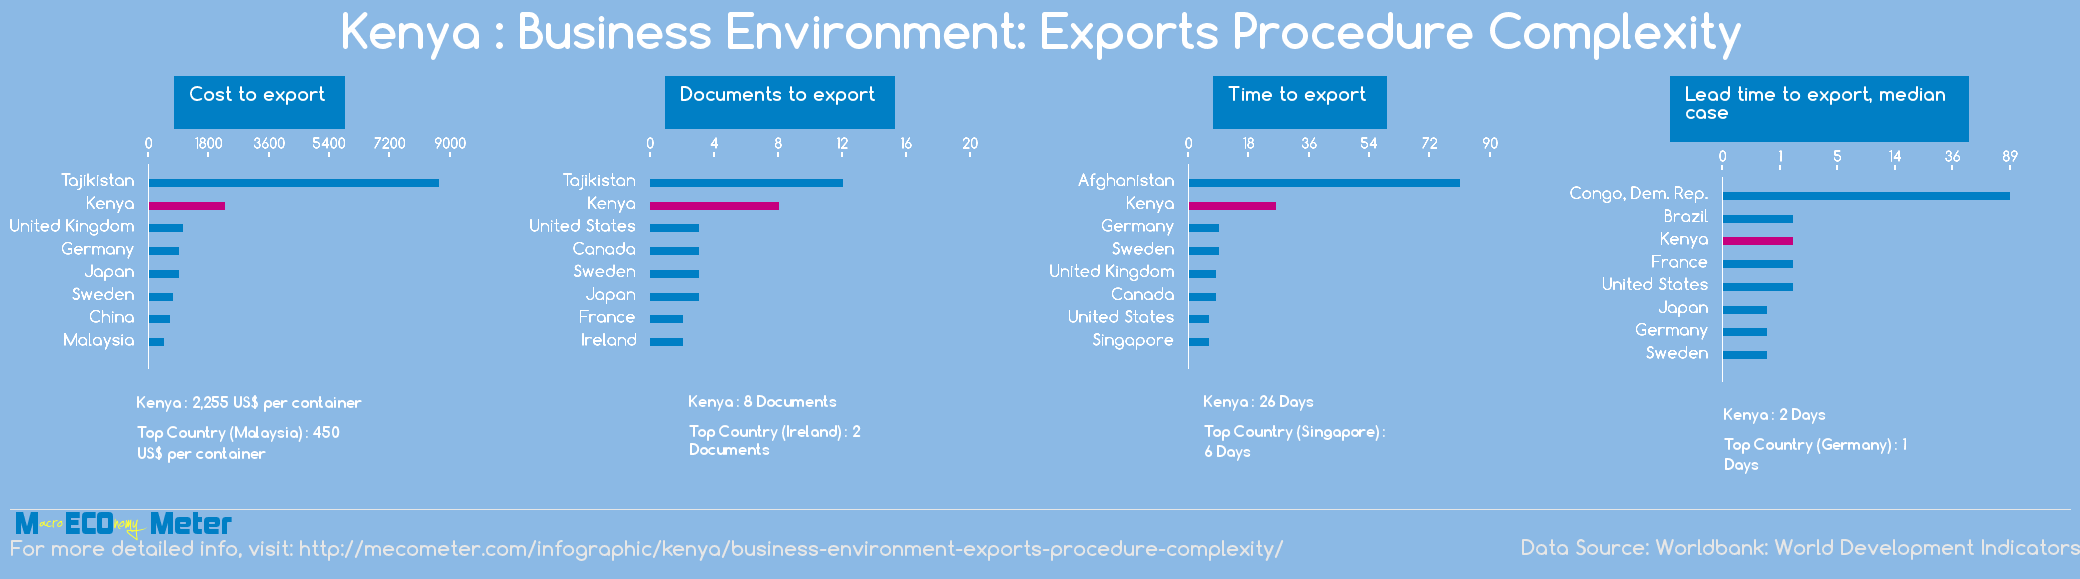 Kenya : Business Environment: Exports Procedure Complexity